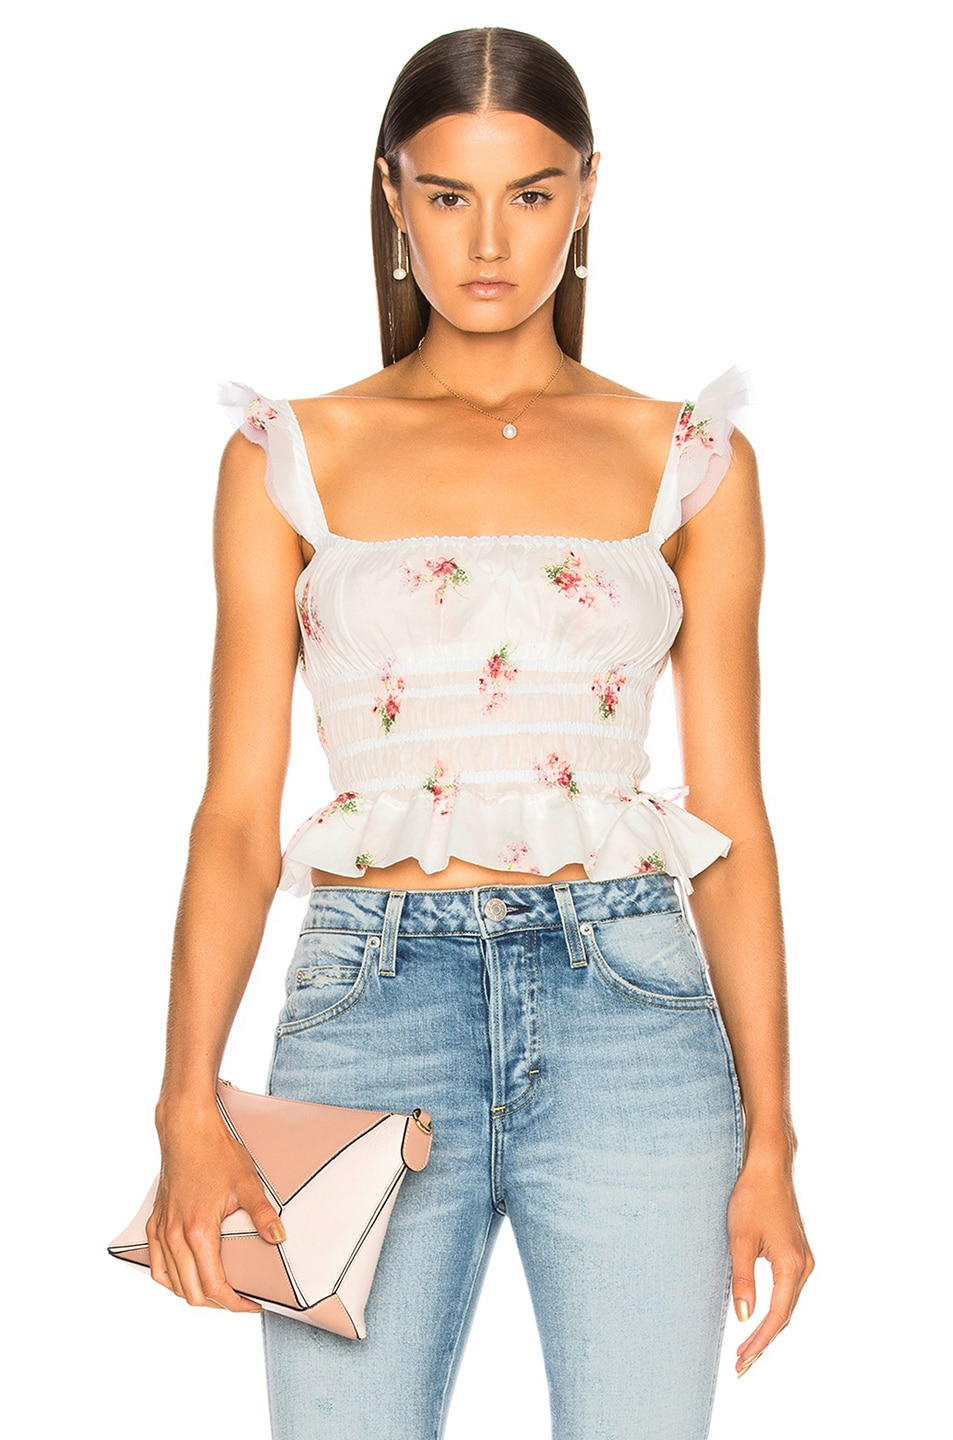 Brock Collection Thadine Top in Floral,White